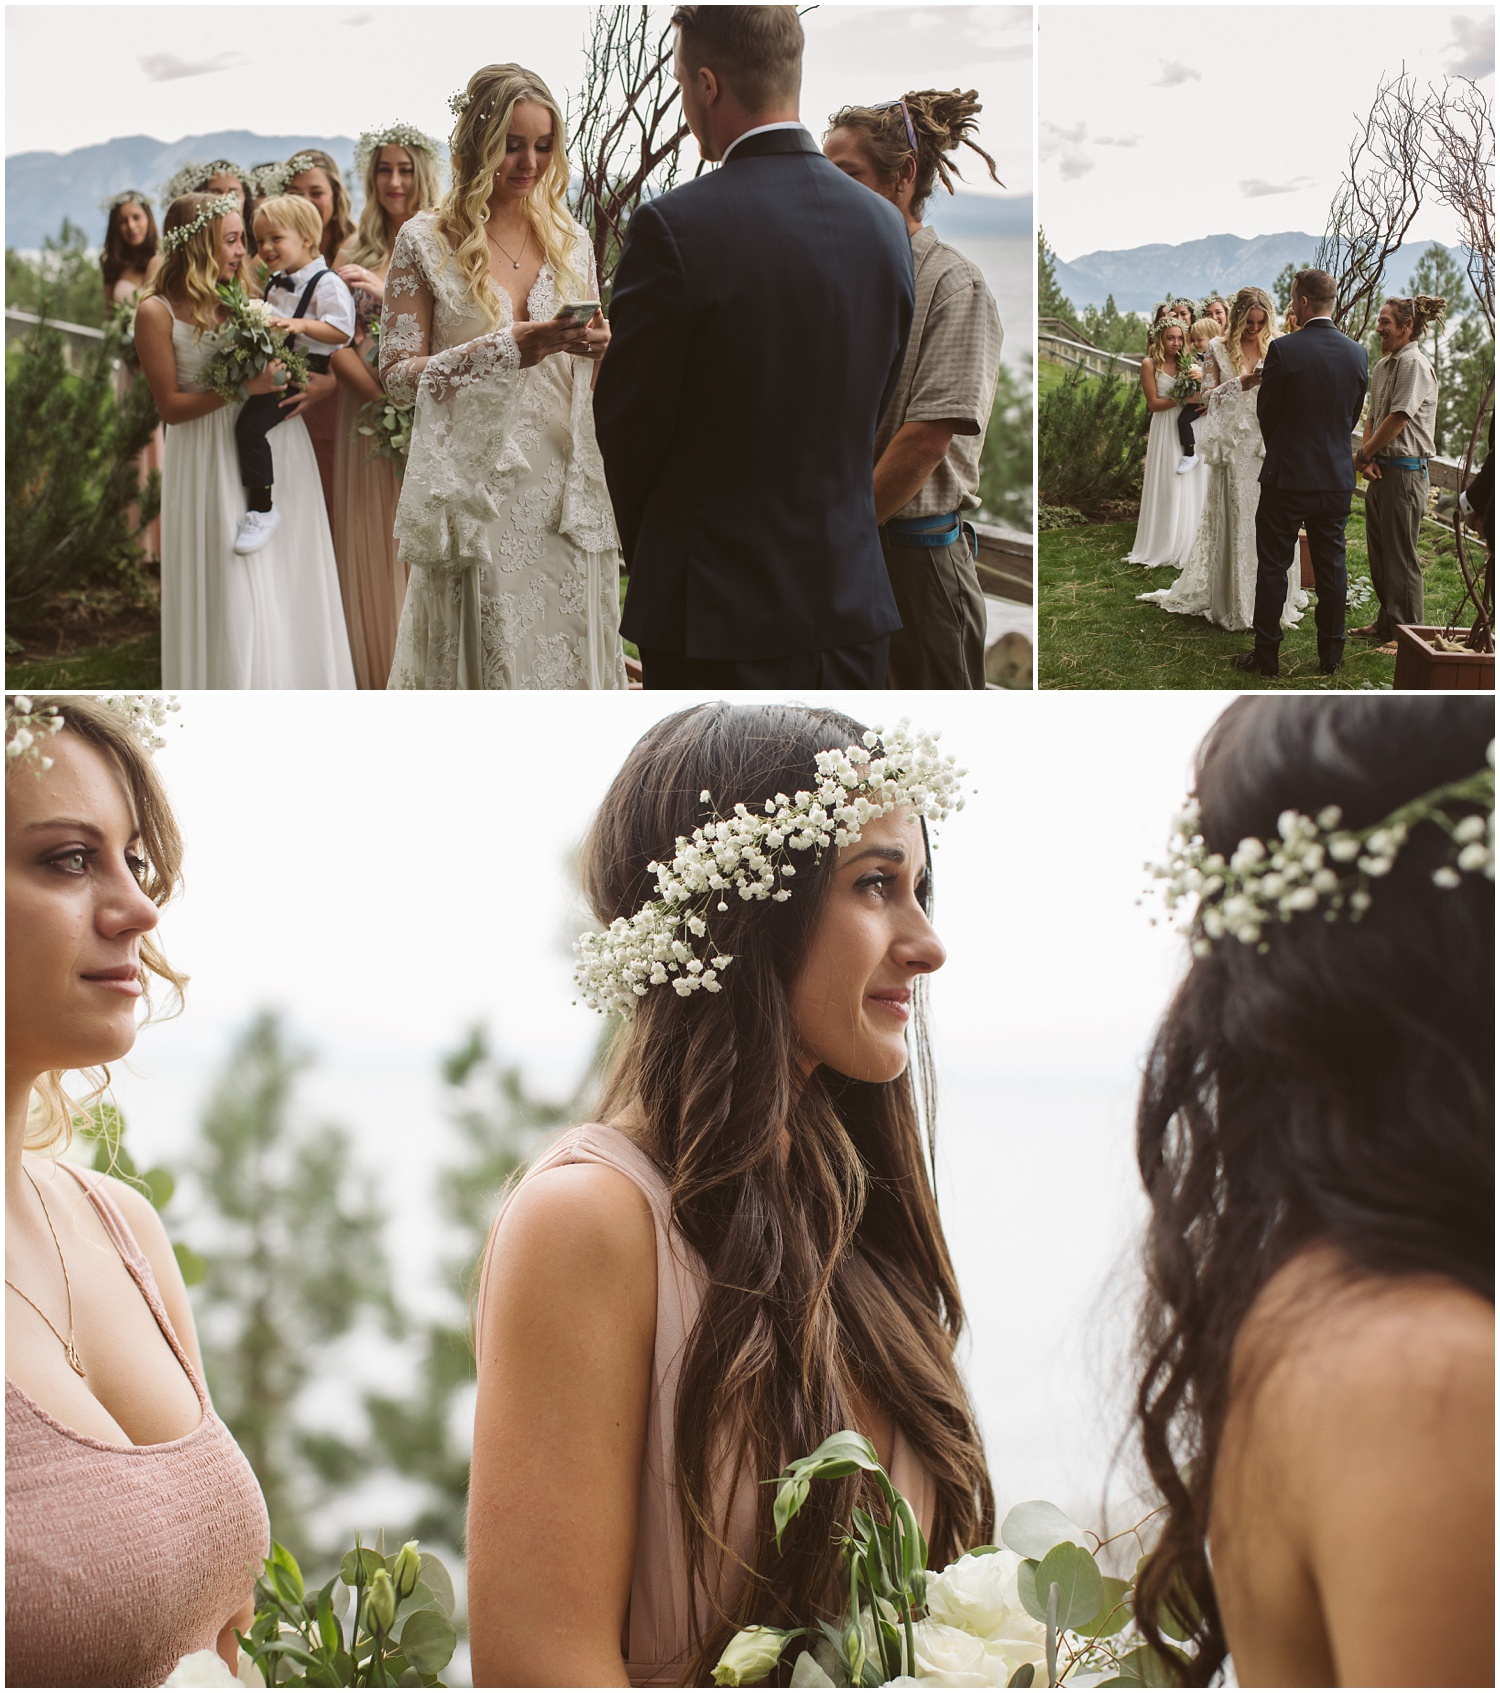 South lake tahoe bohemian wedding lindsay bret lindsay and bret south lake tahoe bohemian wedding junglespirit